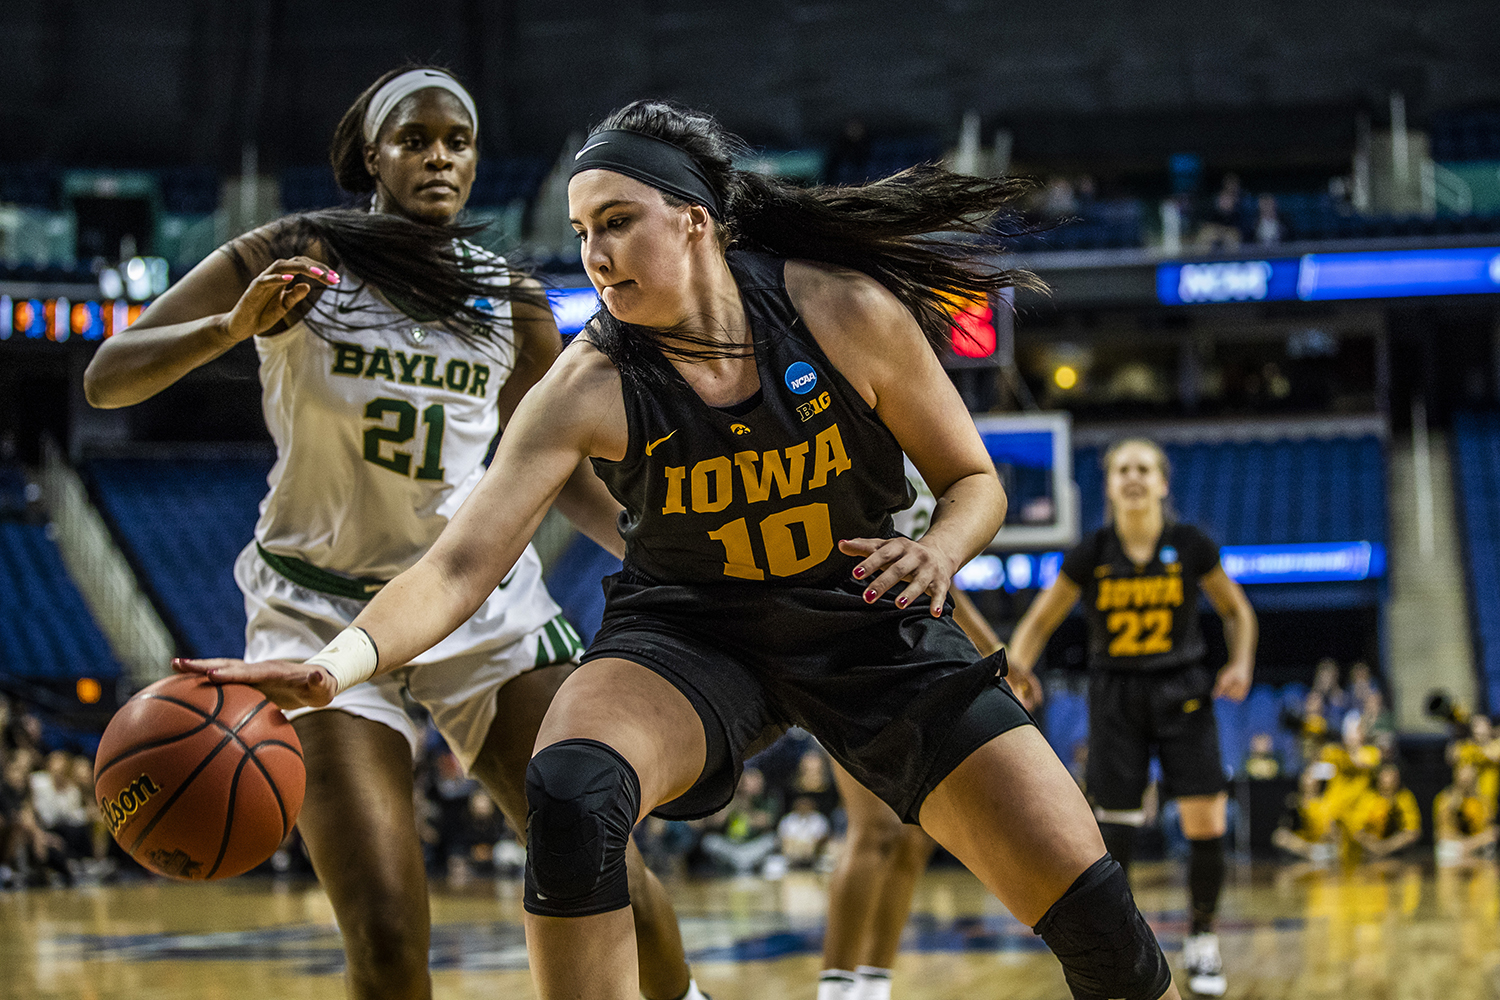 Iowa+center+Megan+Gustafson+takes+a+hold+of+the+ball+as+Baylor+center+Kalani+Brown+runs+to+guard+her+during+the+NCAA+Elite+8+game+against+Baylor+on+April+1.